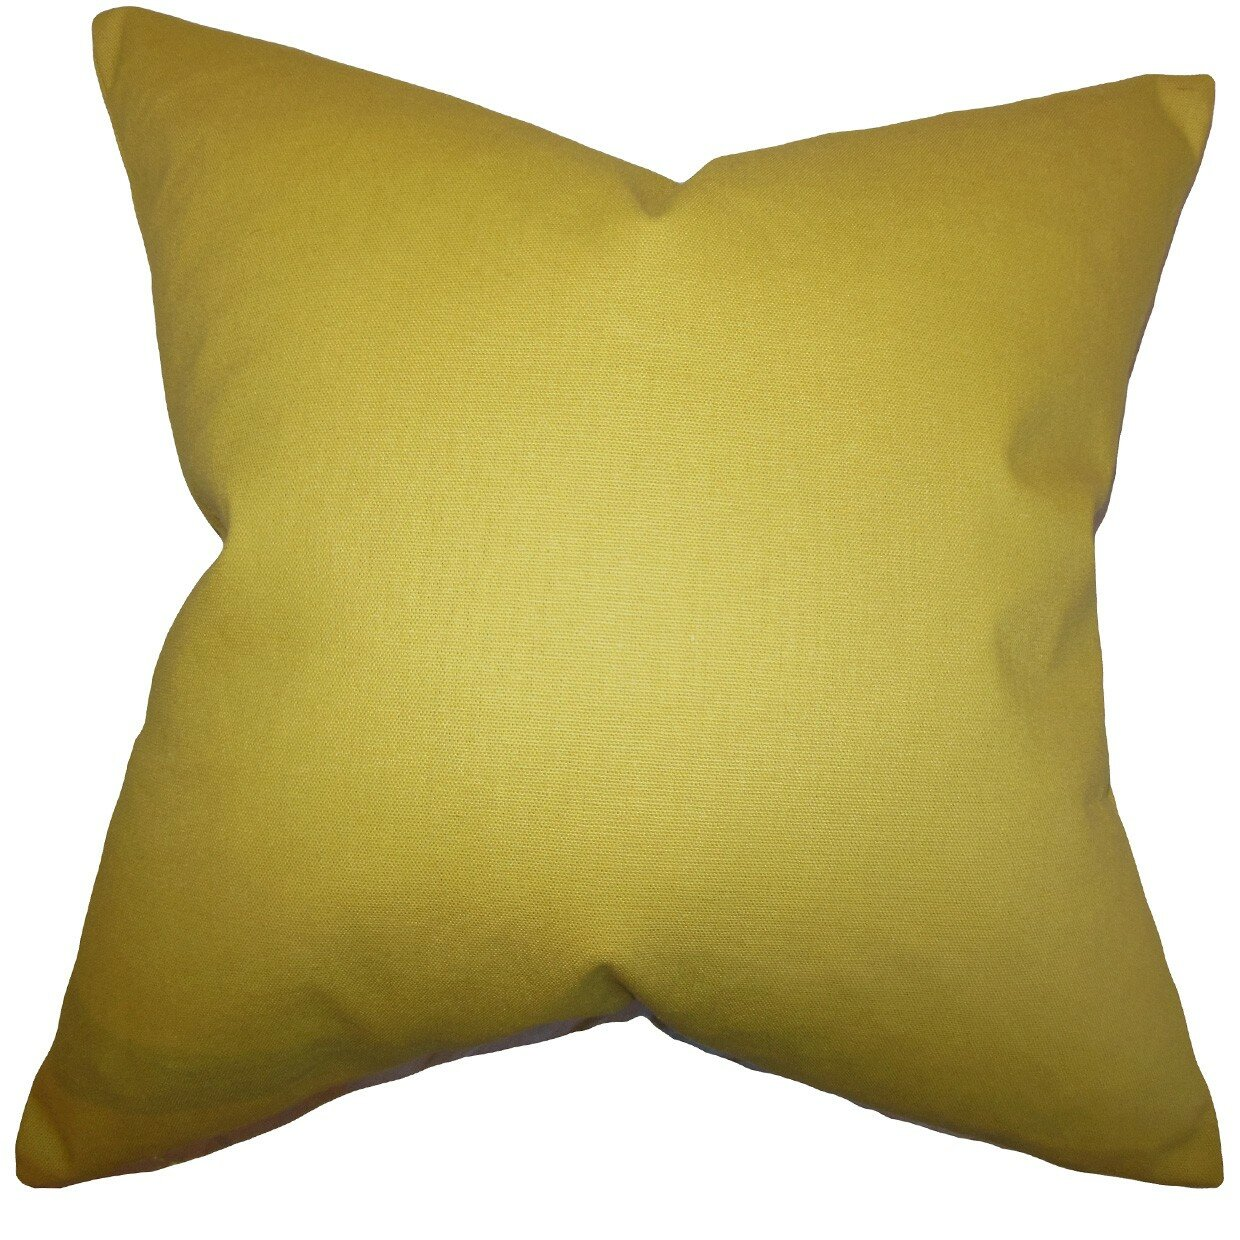 Throw Pillow Gallery : Varick Gallery Portsmouth Solid Cotton Throw Pillow & Reviews Wayfair